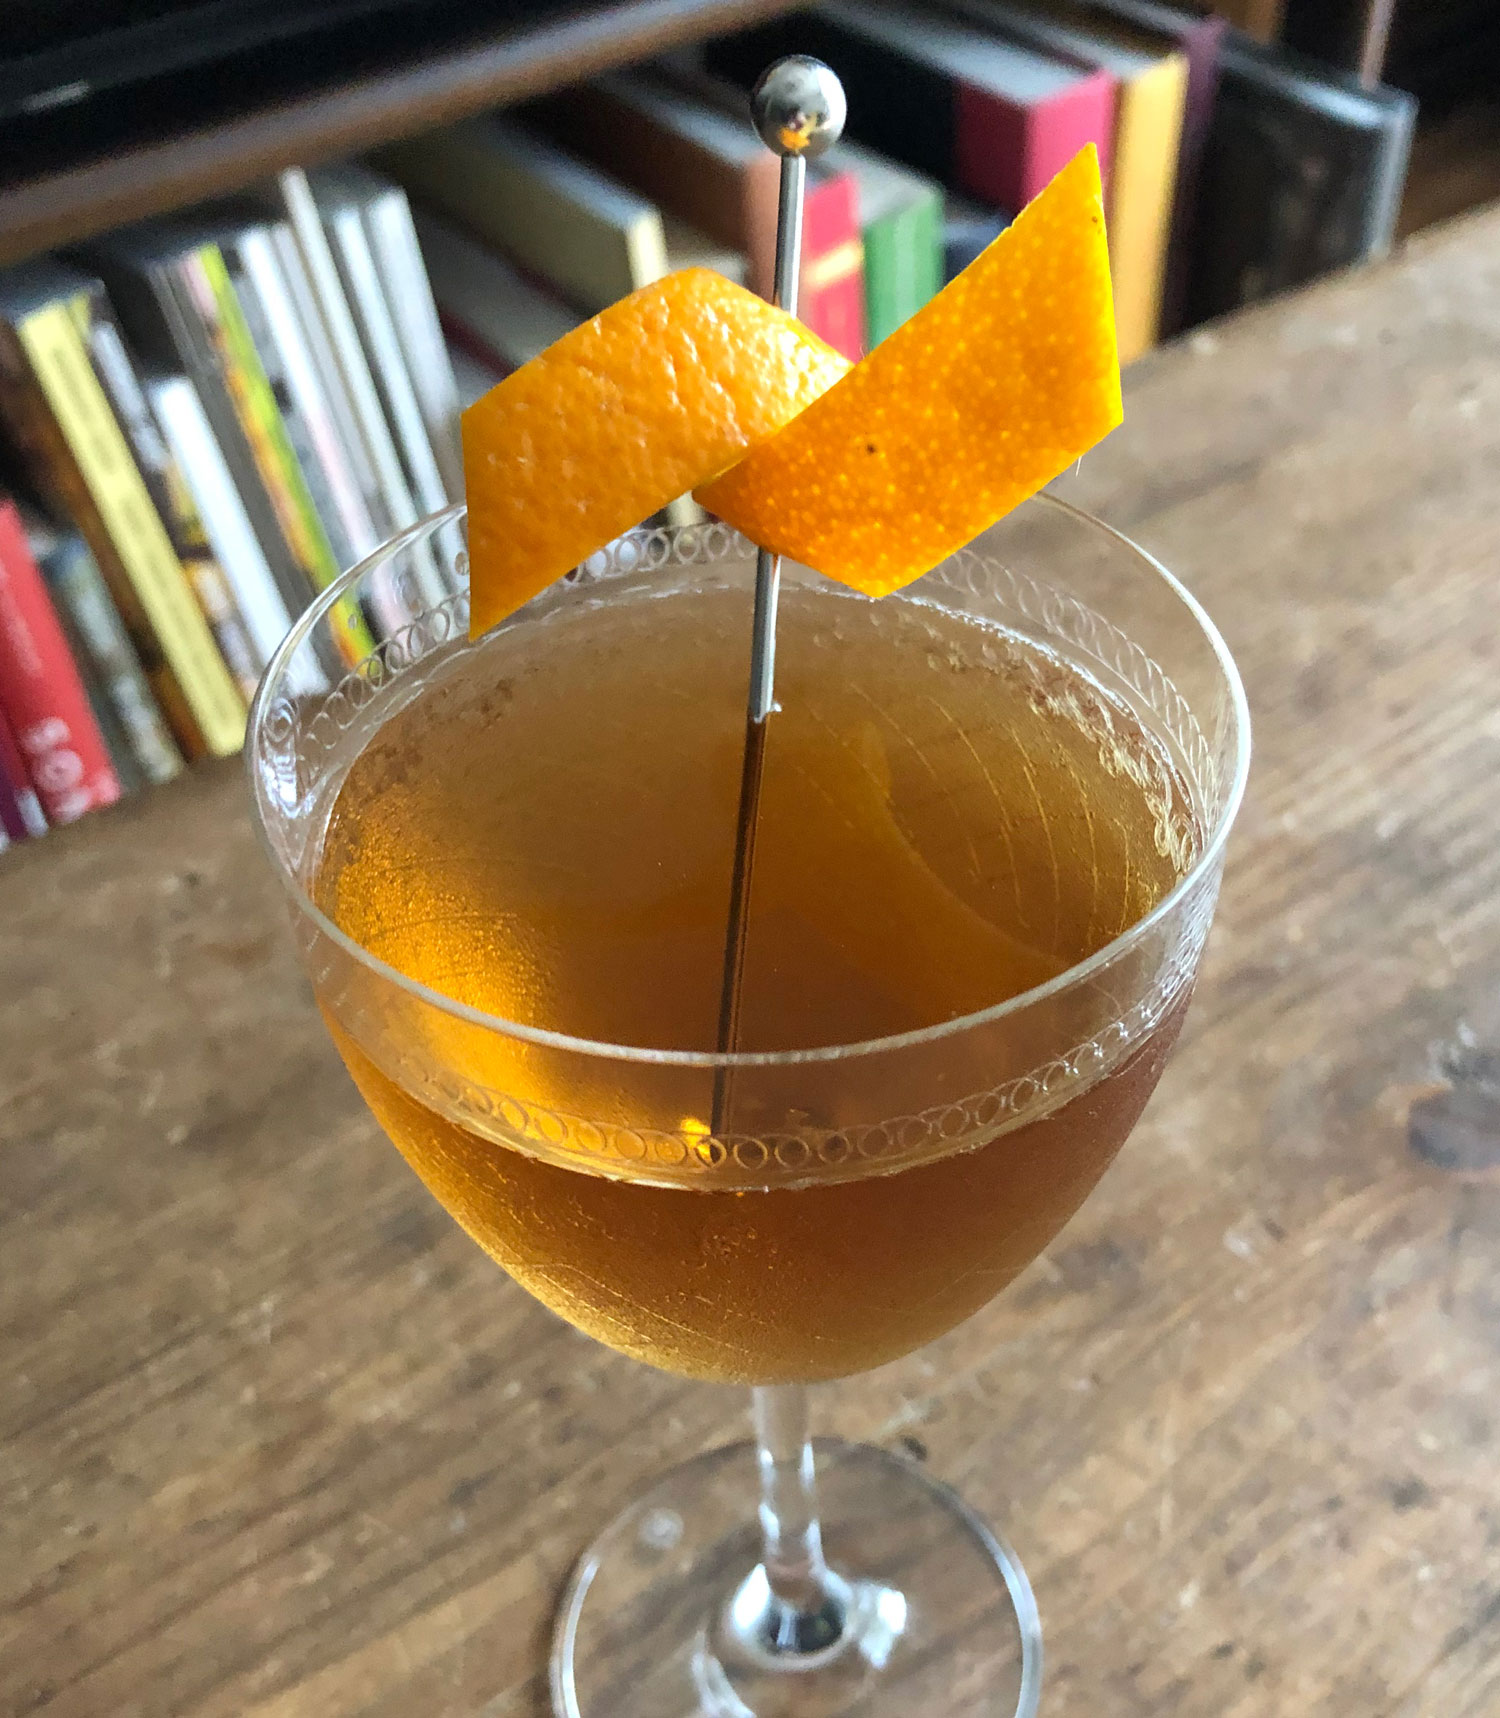 An example of the Bobby Burns, the mixed drink (cocktail) featuring scotch whisky, Dolin Rouge Vermouth de Chambéry, and Bénédictine; photo by Lee Edwards